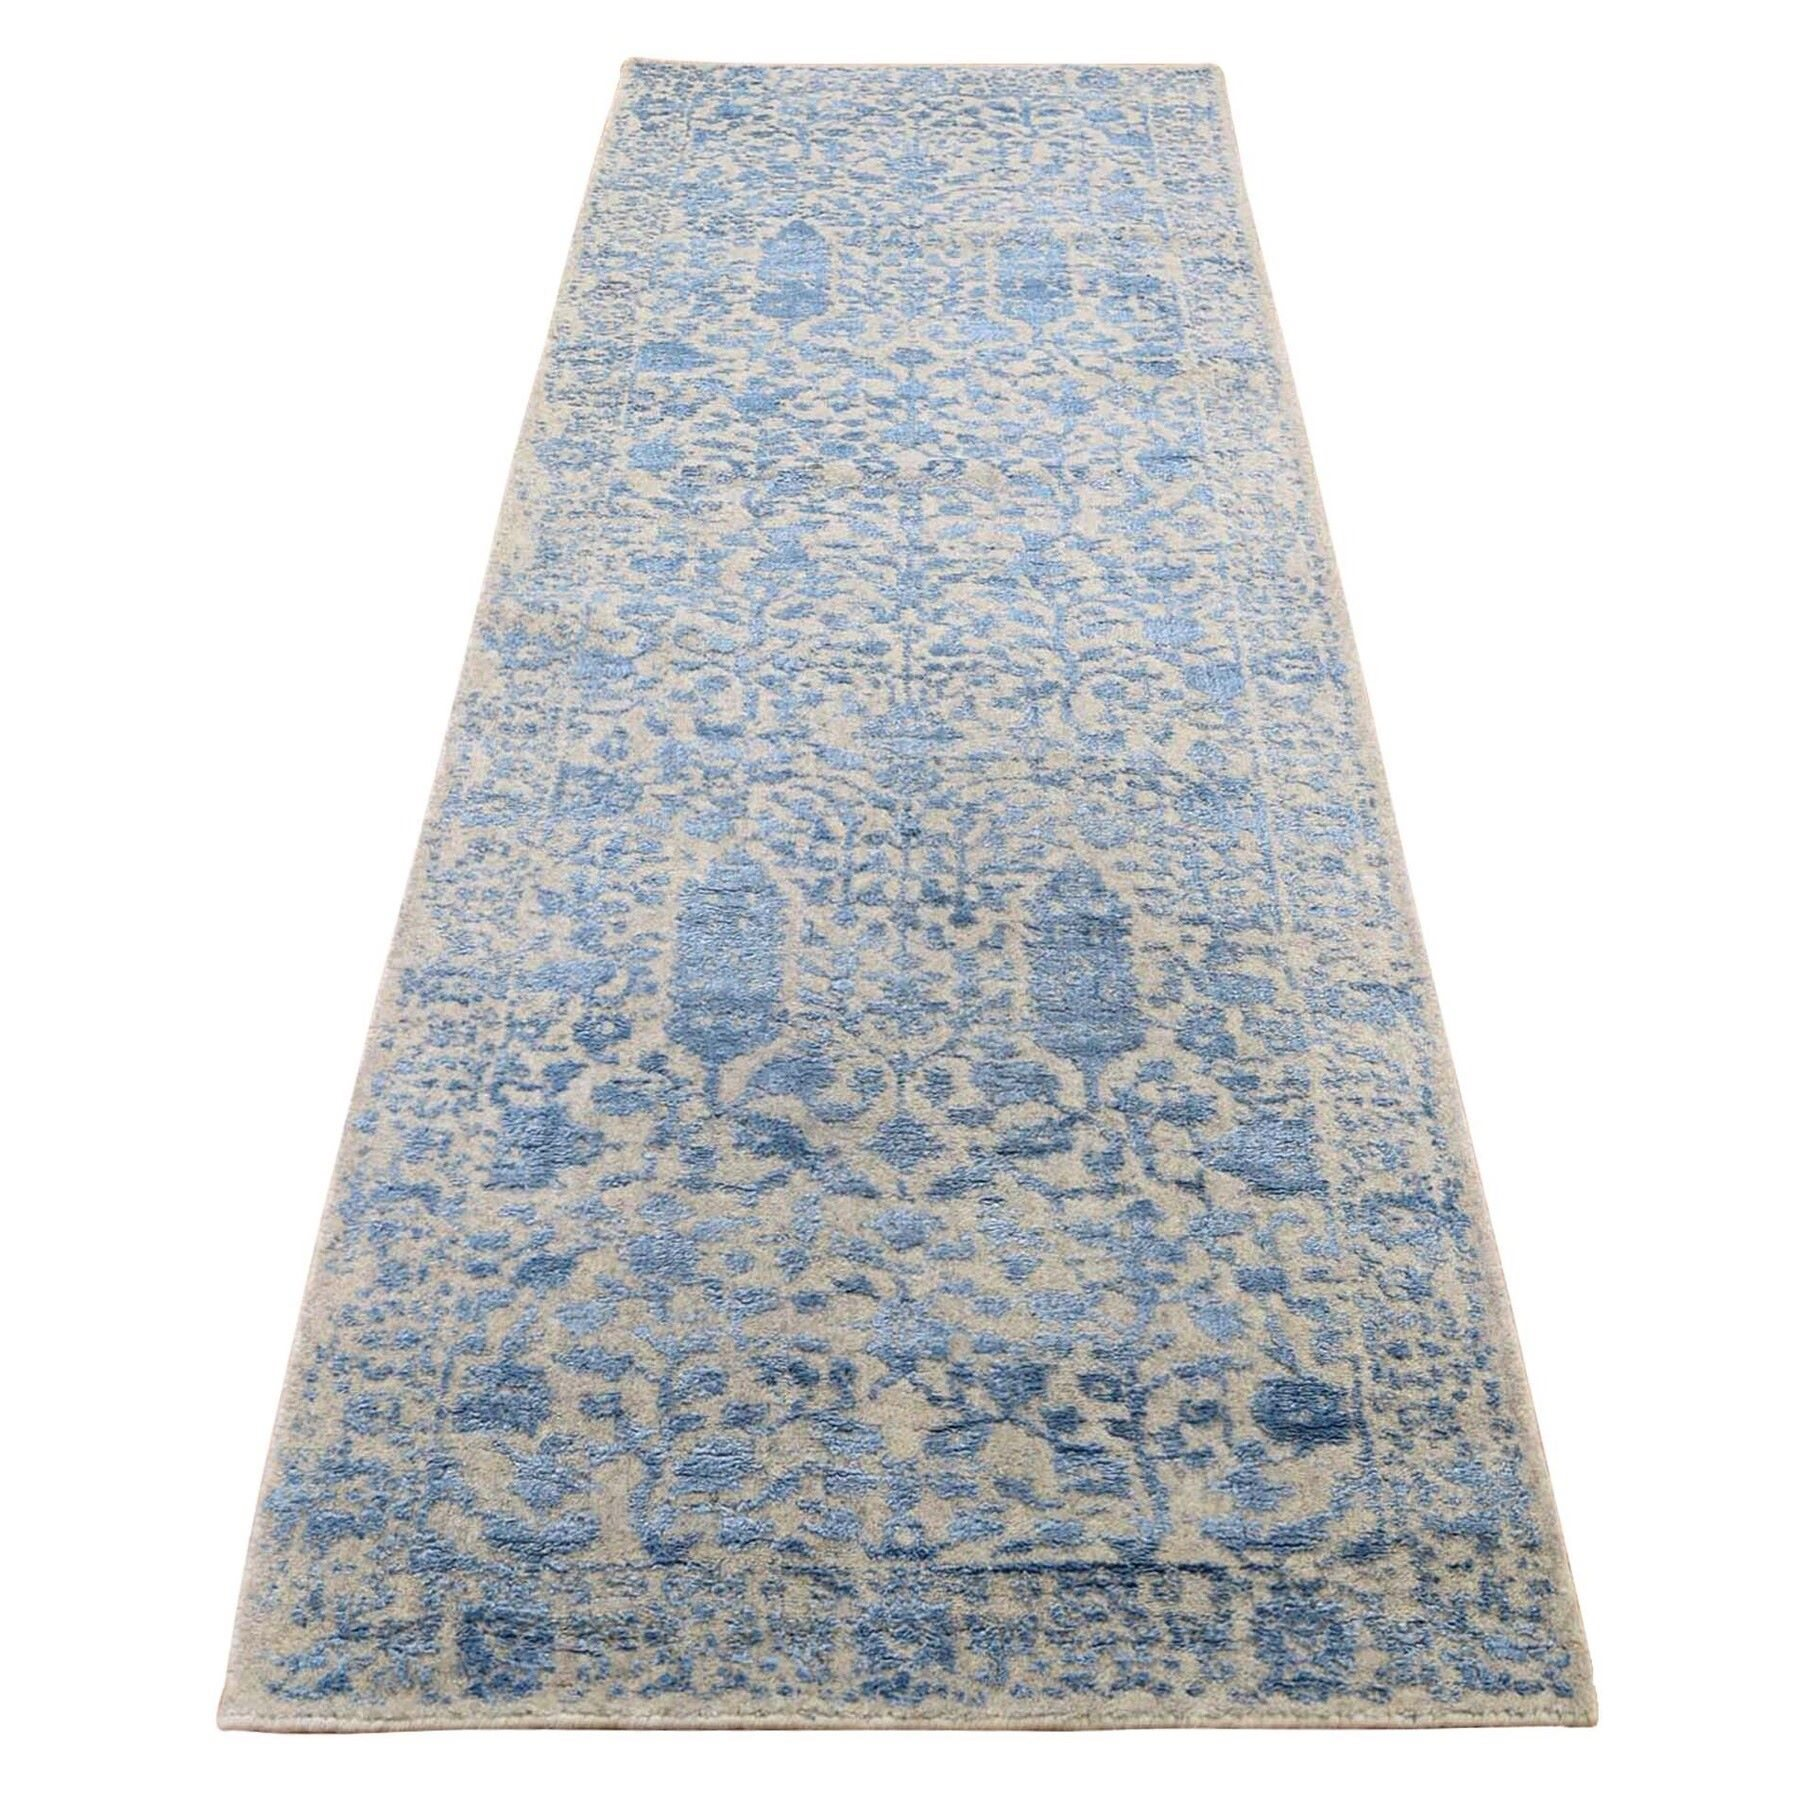 "2'5""X10'1"" Jacquard Hand-Loomed Blue Broken Cypress Tree Design Silken Thick And Plush Runner Oriental Rug moadee6e"